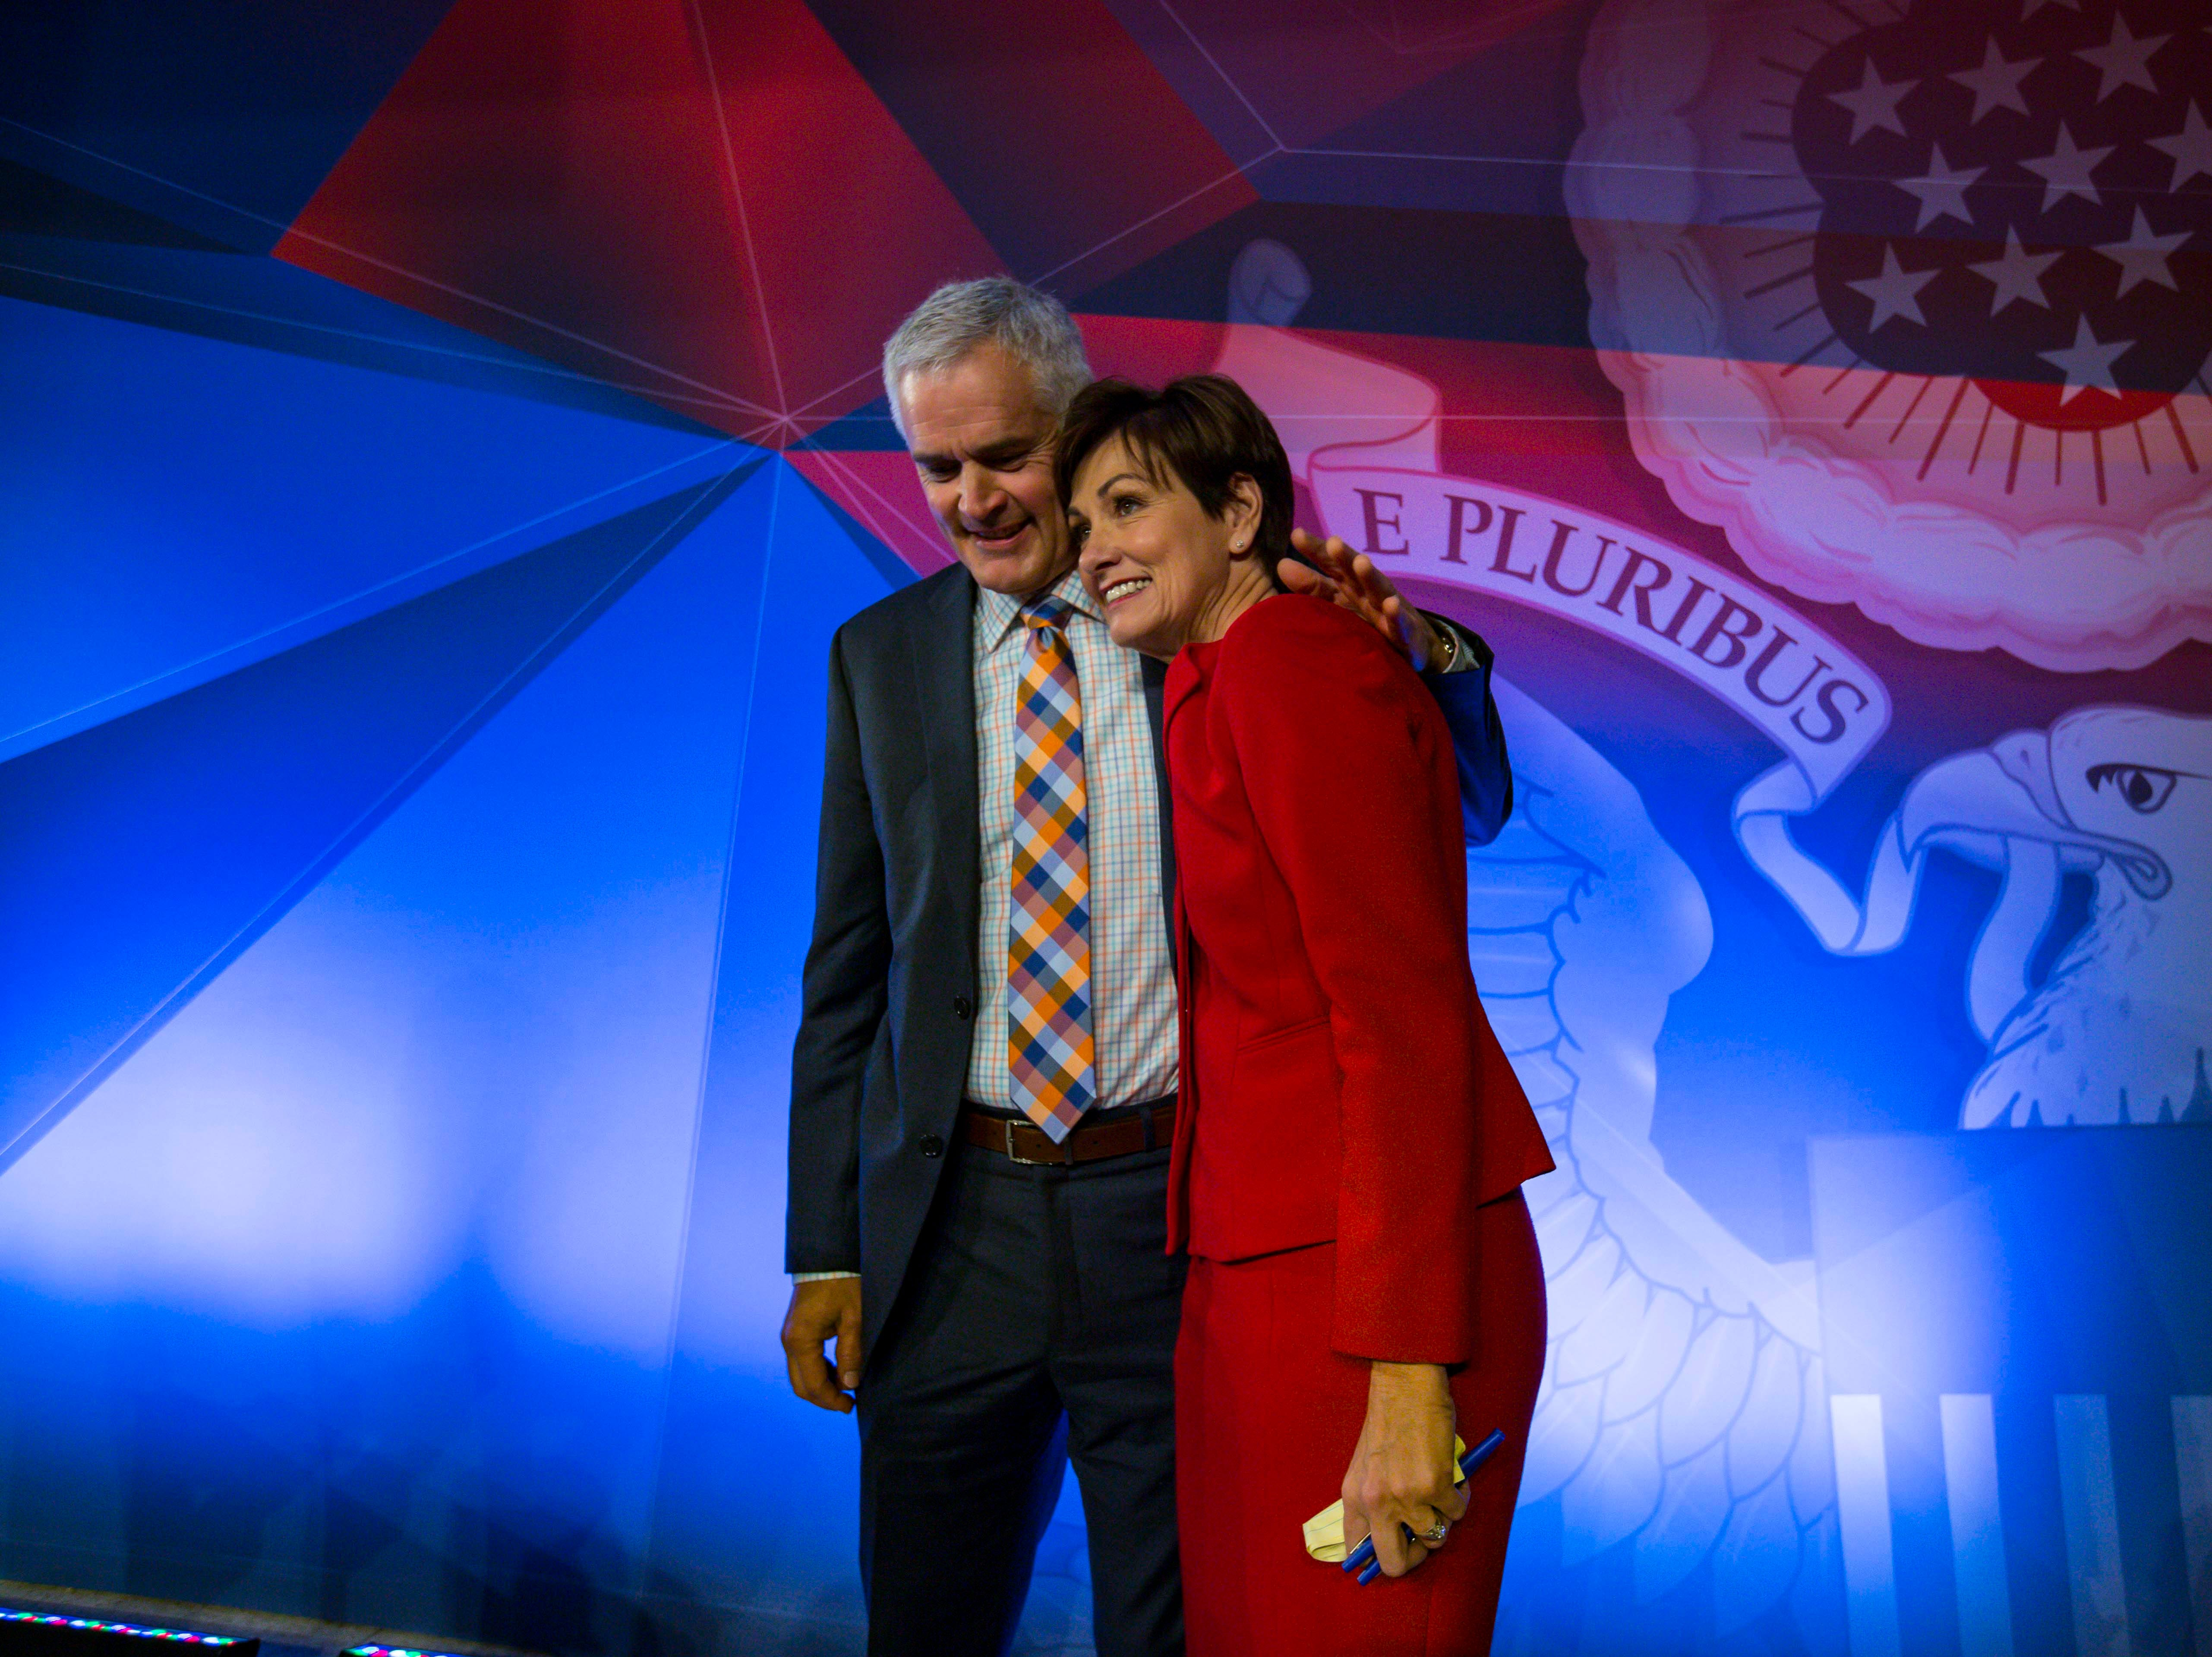 Republican Iowa Gov. Kim Reynolds hugs her husband Kevin after the debate Wednesday, Oct. 10, 2018, at Des Moines Area Community College in Ankeny, Iowa.